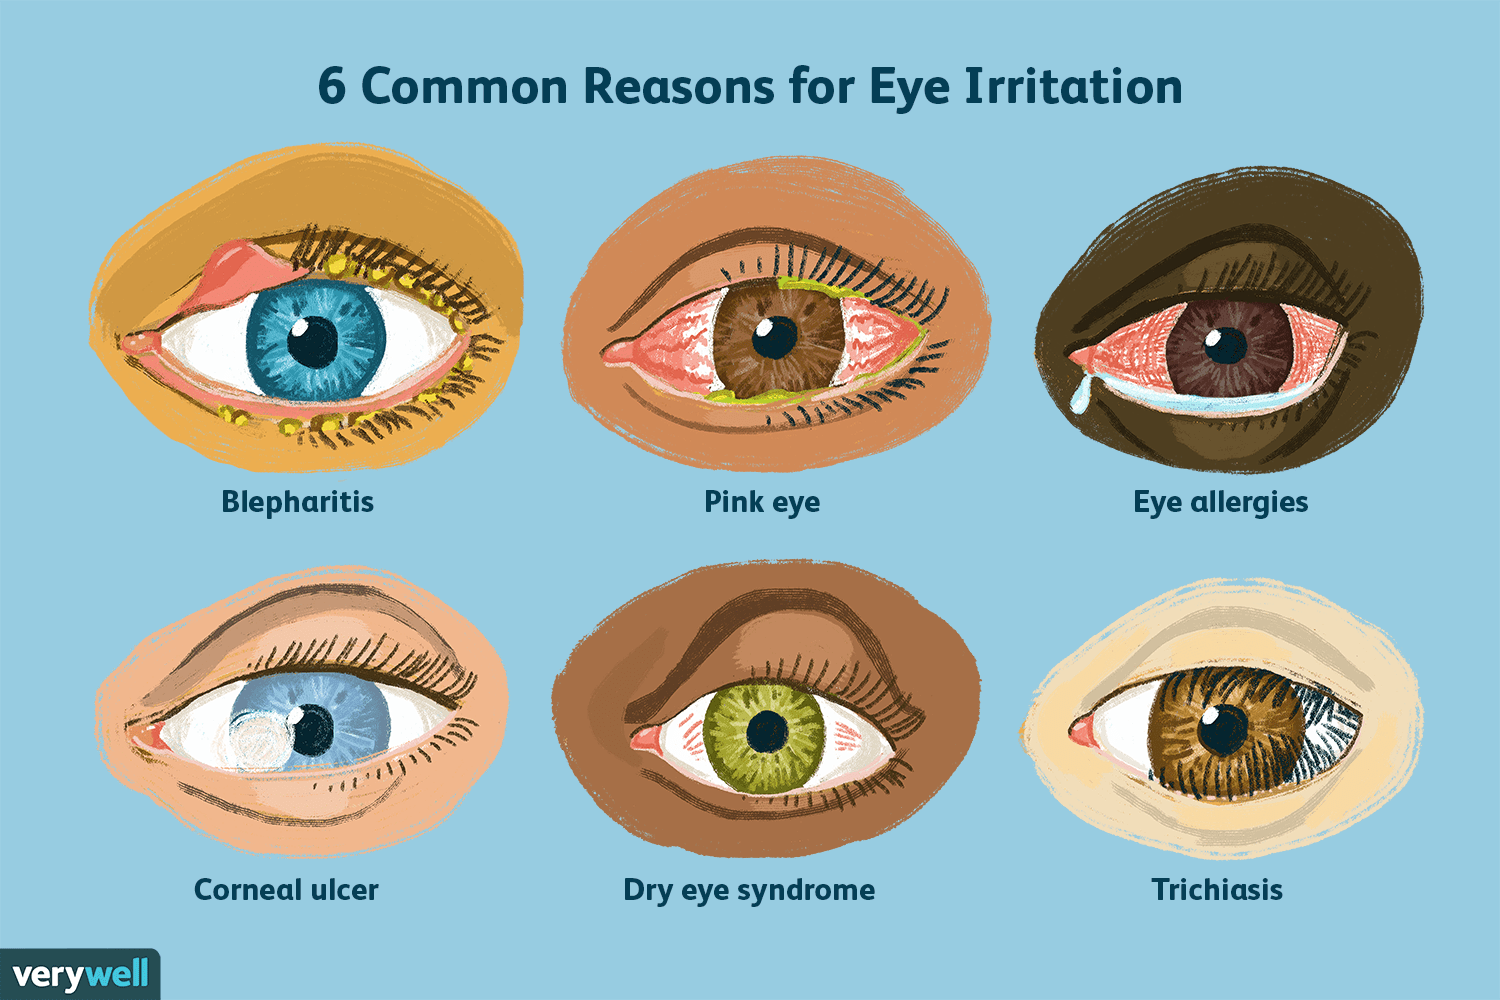 Top 6 Reasons for Eye Irritation - photo#42